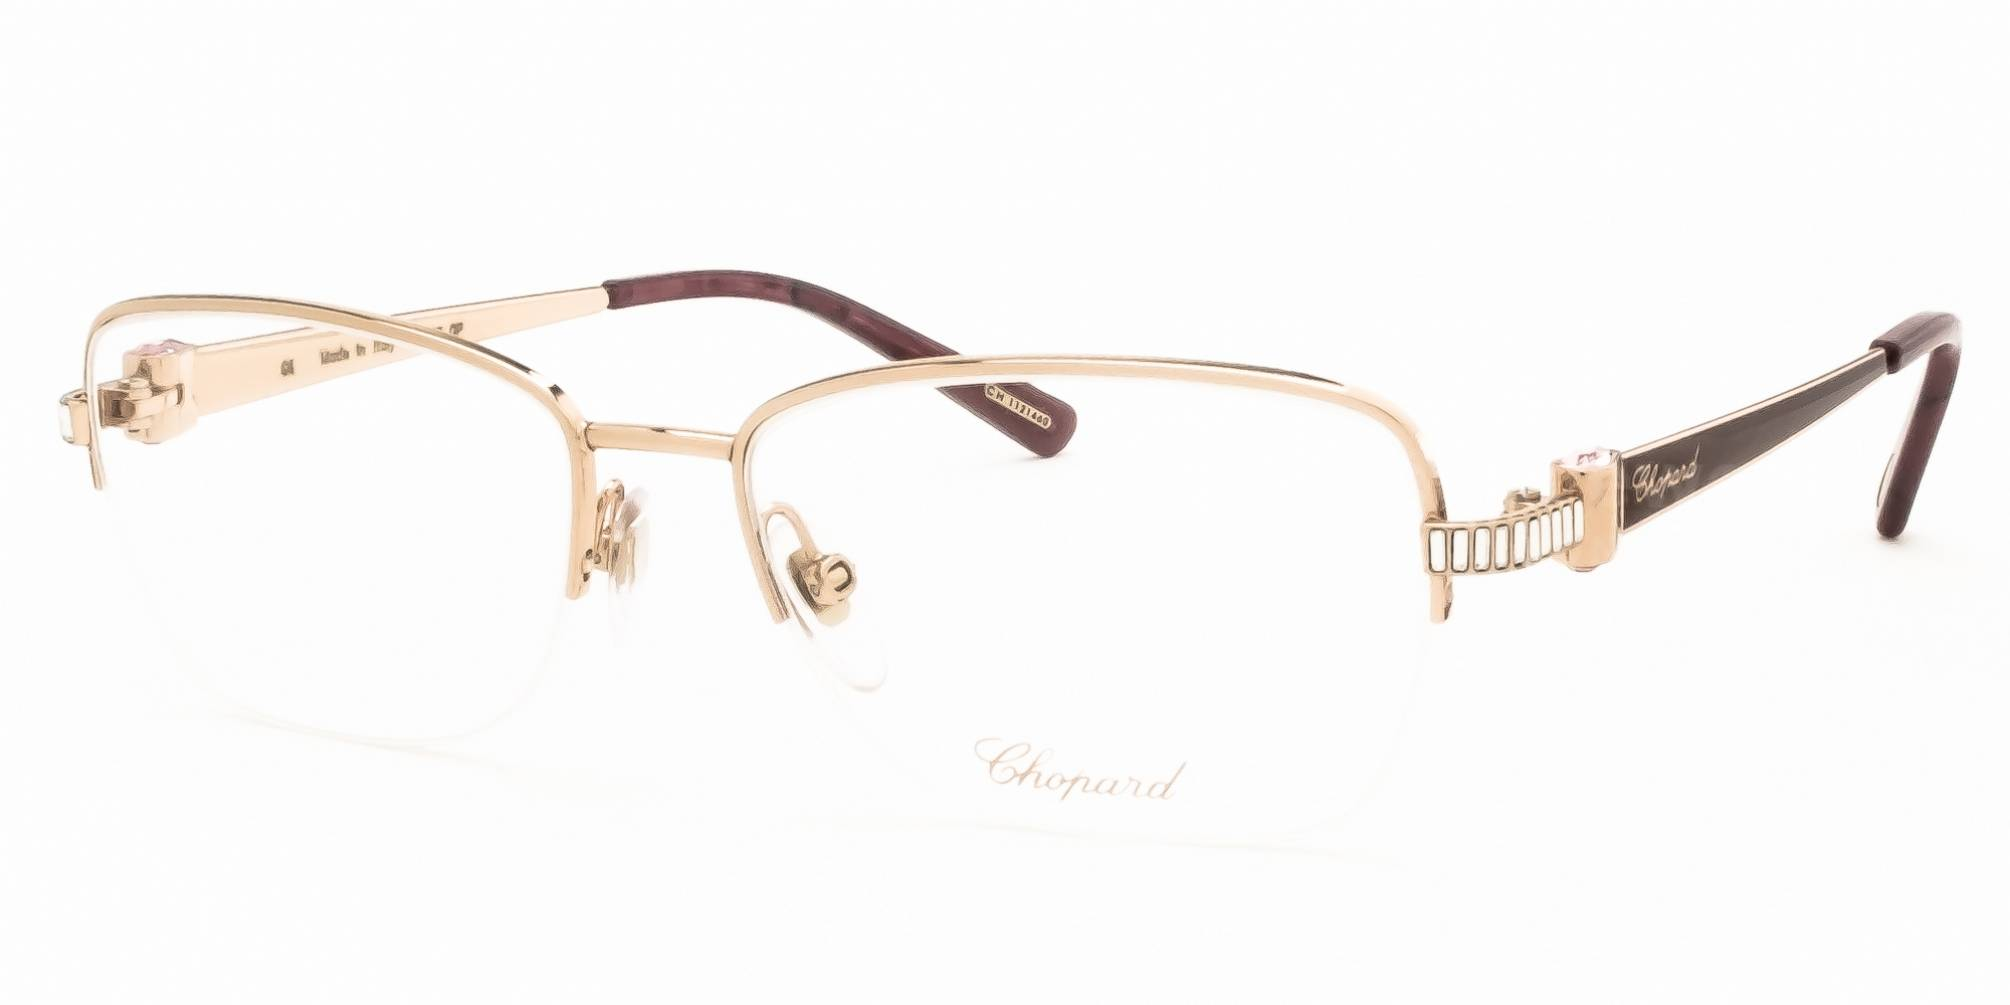 985192395367 Chopard Glasses in Elston